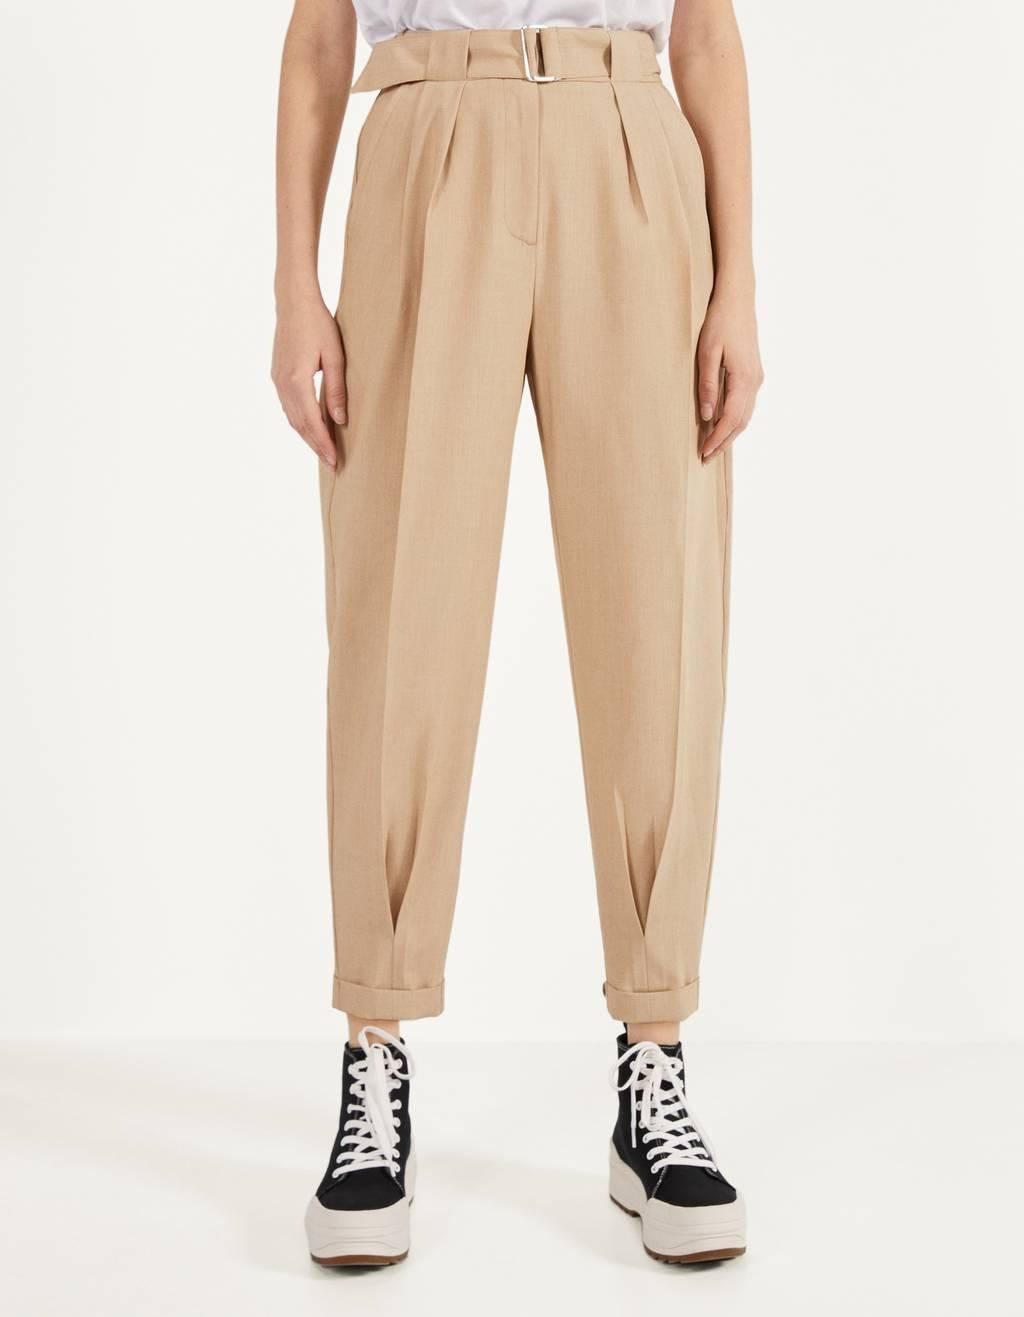 Balloon fit trousers with belt